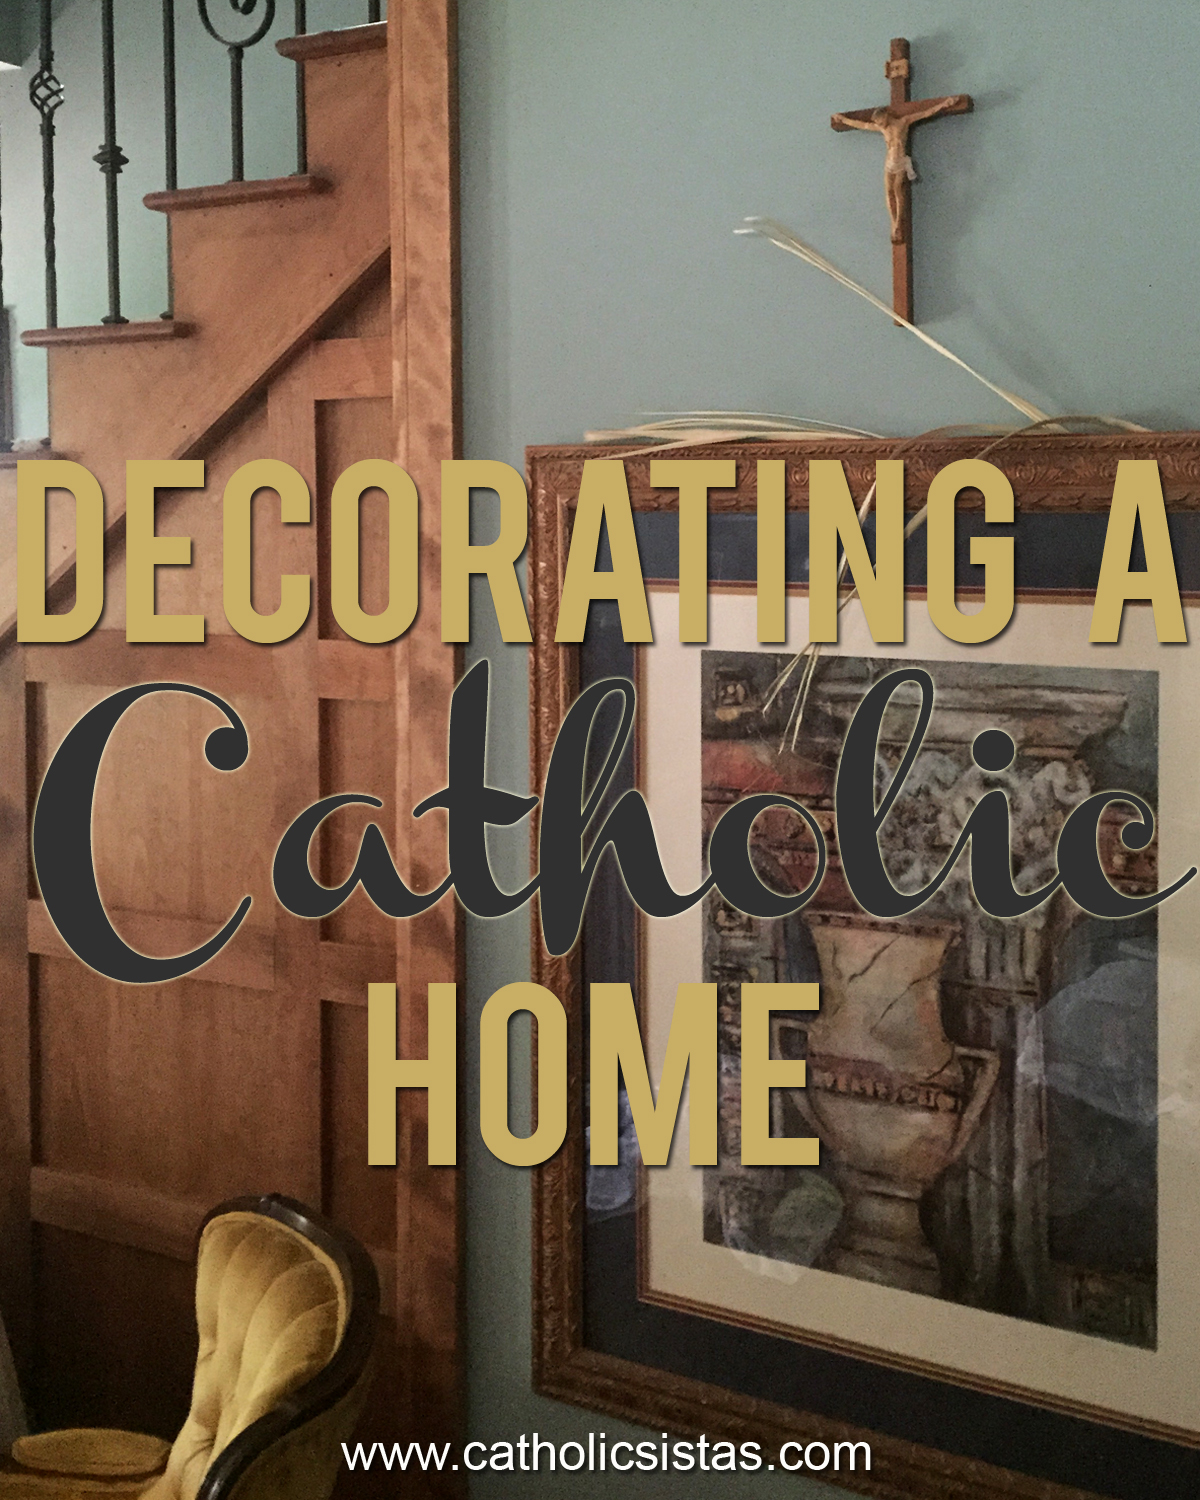 Home Interior Jesus: Decorating A Catholic Home